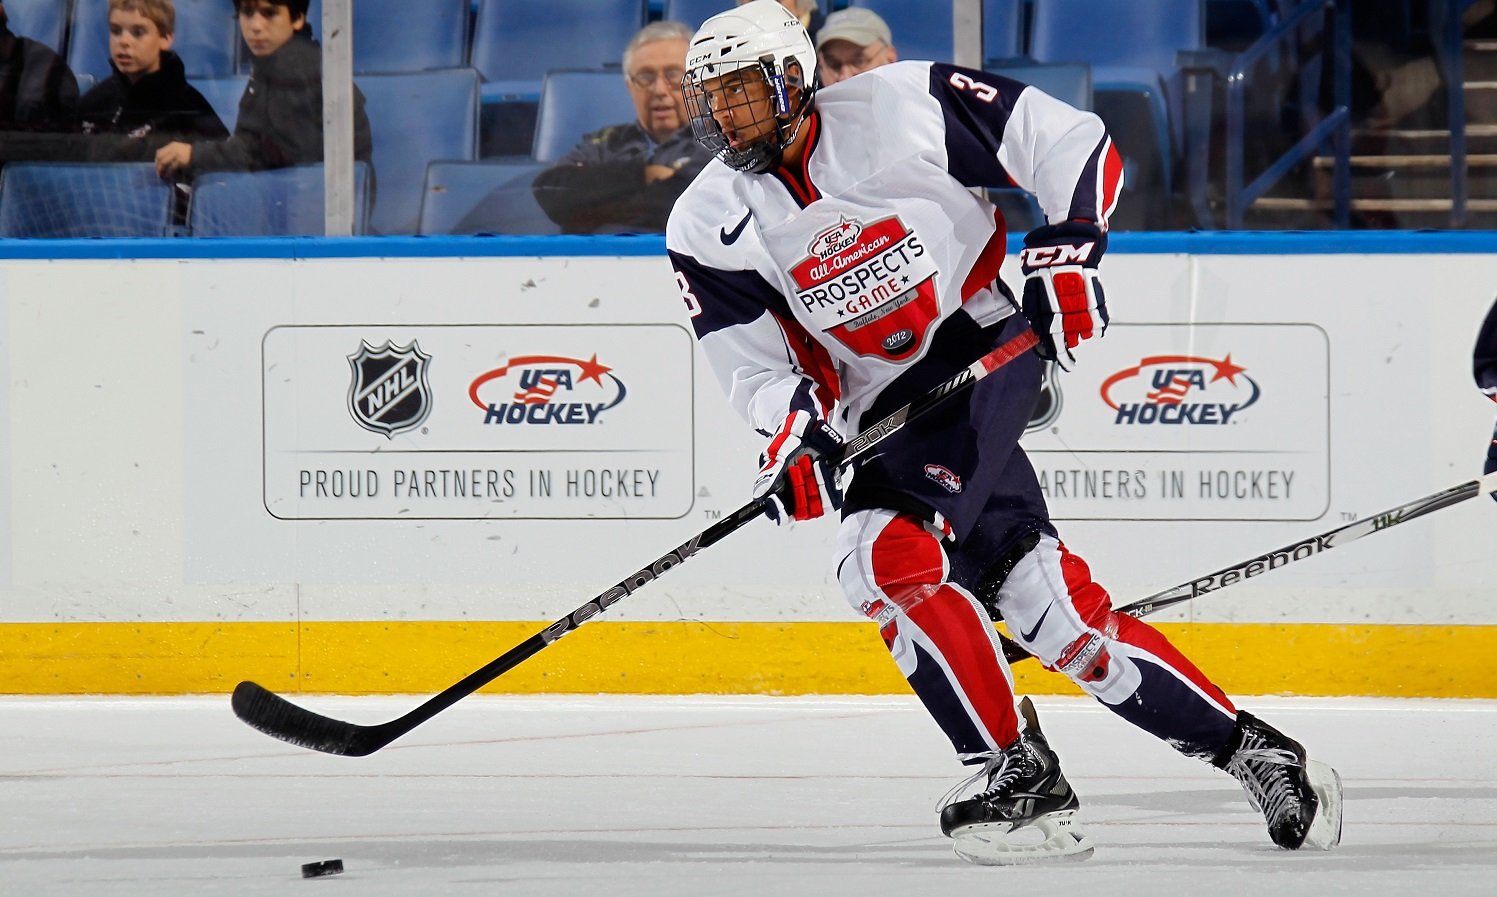 seth jones was rcently selected no 4 overall in the nhl draft by the